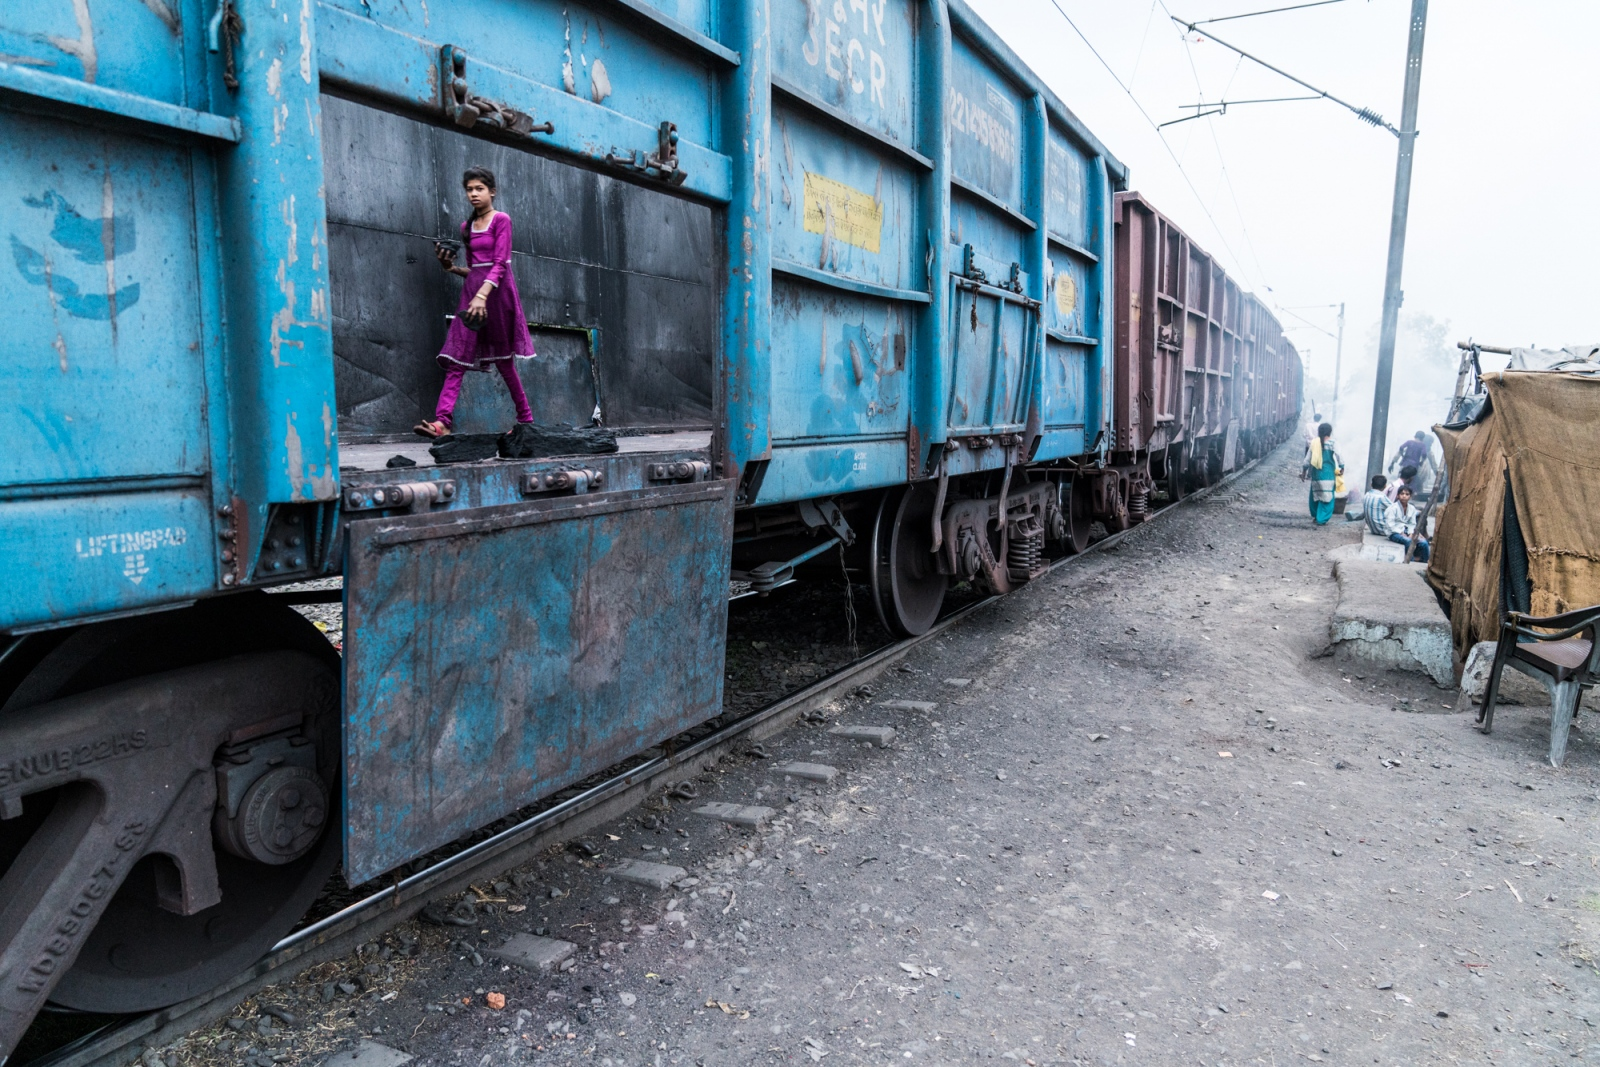 A girl scavenges for coal inside an empty coal train carriage. Central India.